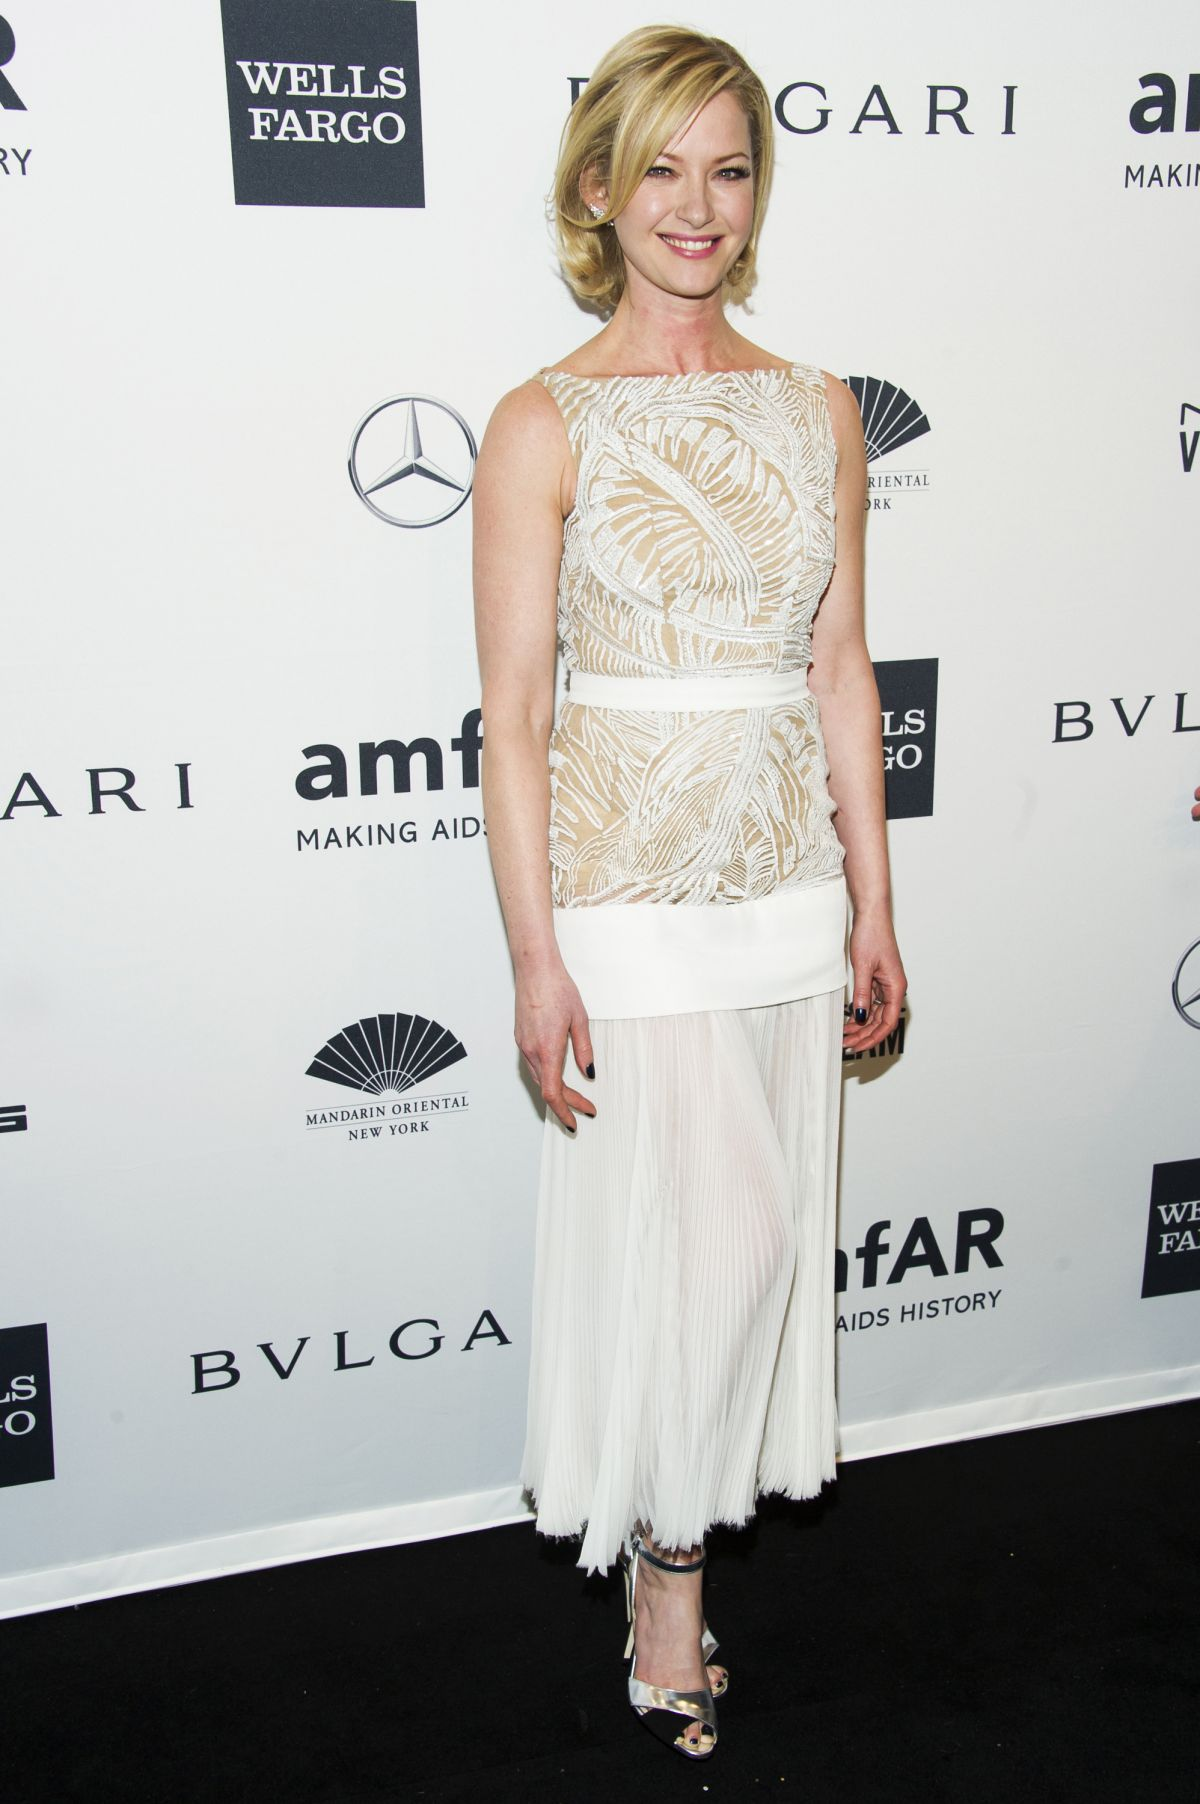 Gretchen Mol At amfAR New York Gala